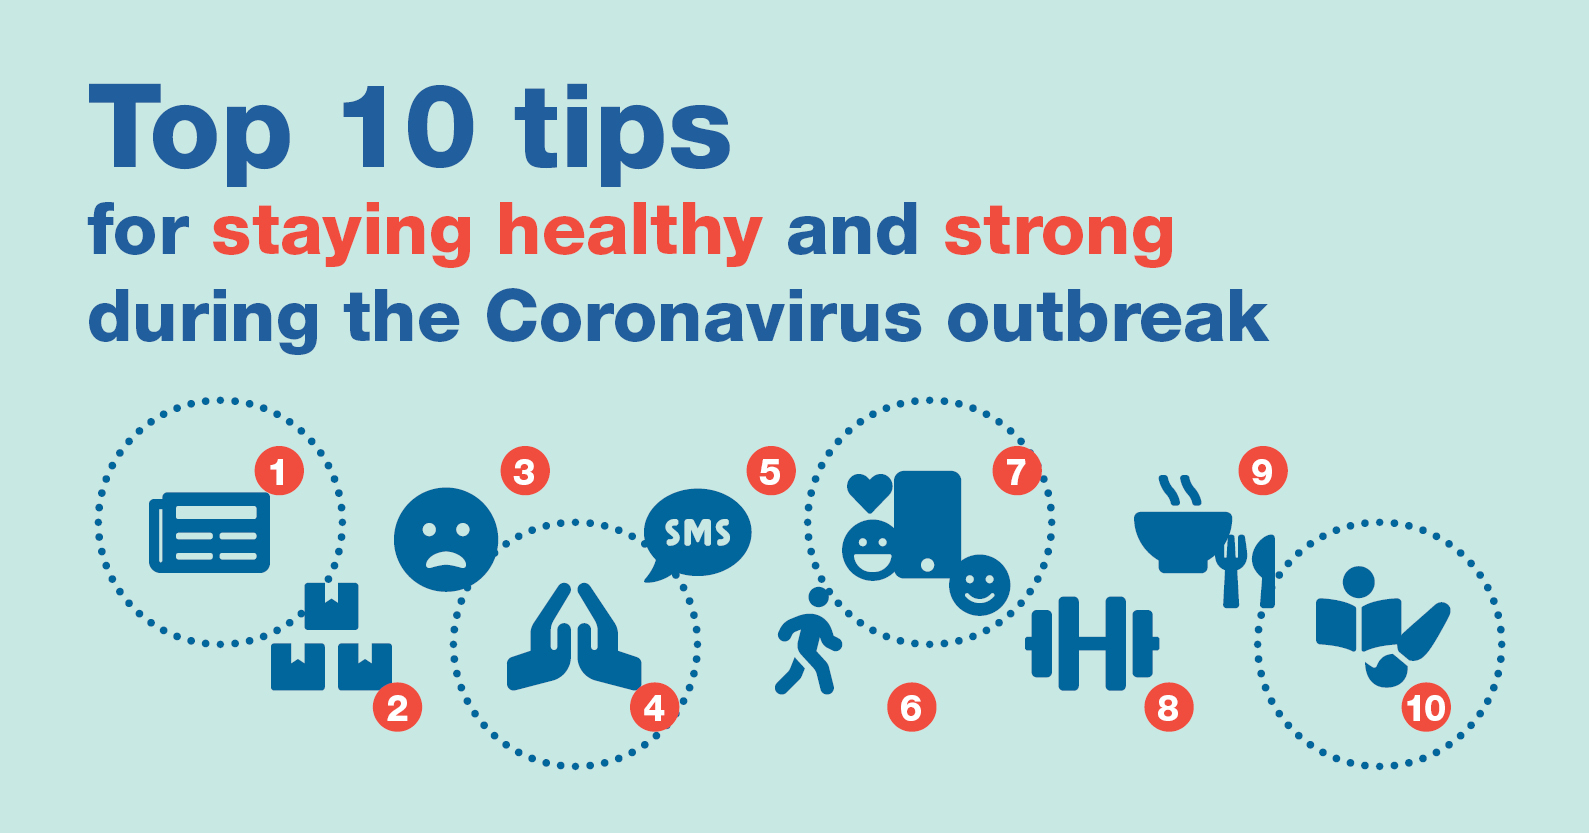 Top 10 tips for staying healthy and strong during the coronavirus outbreak